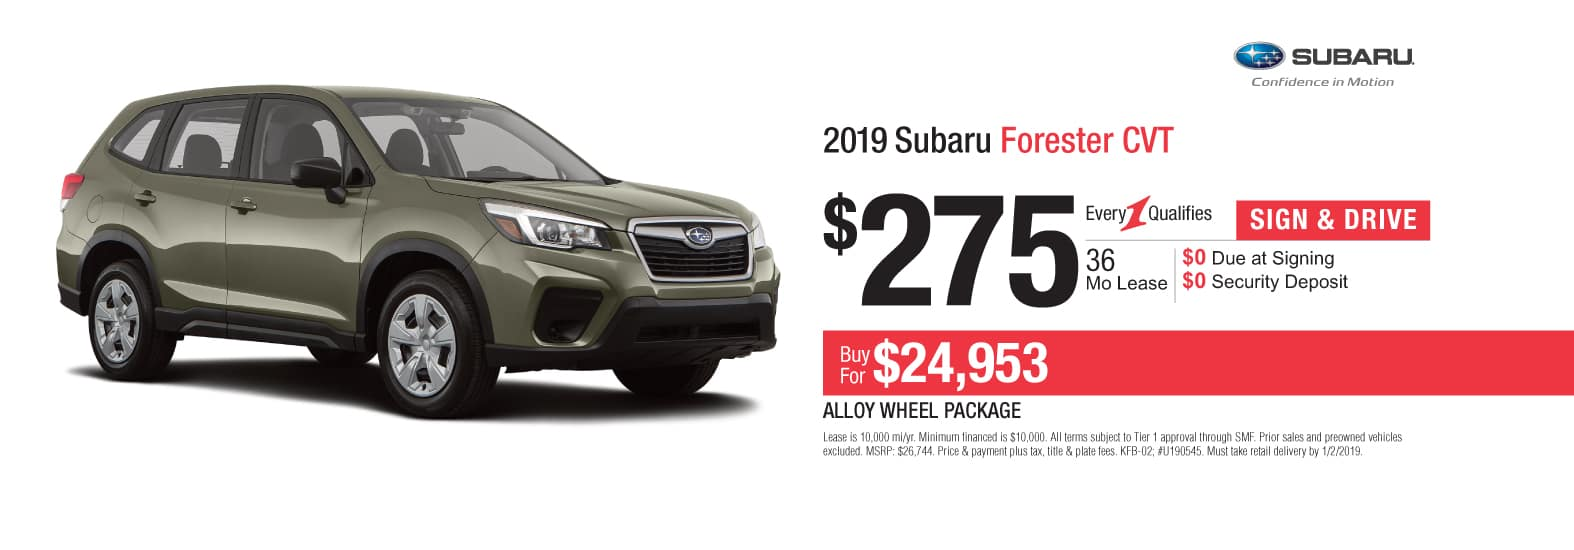 2019 Forester